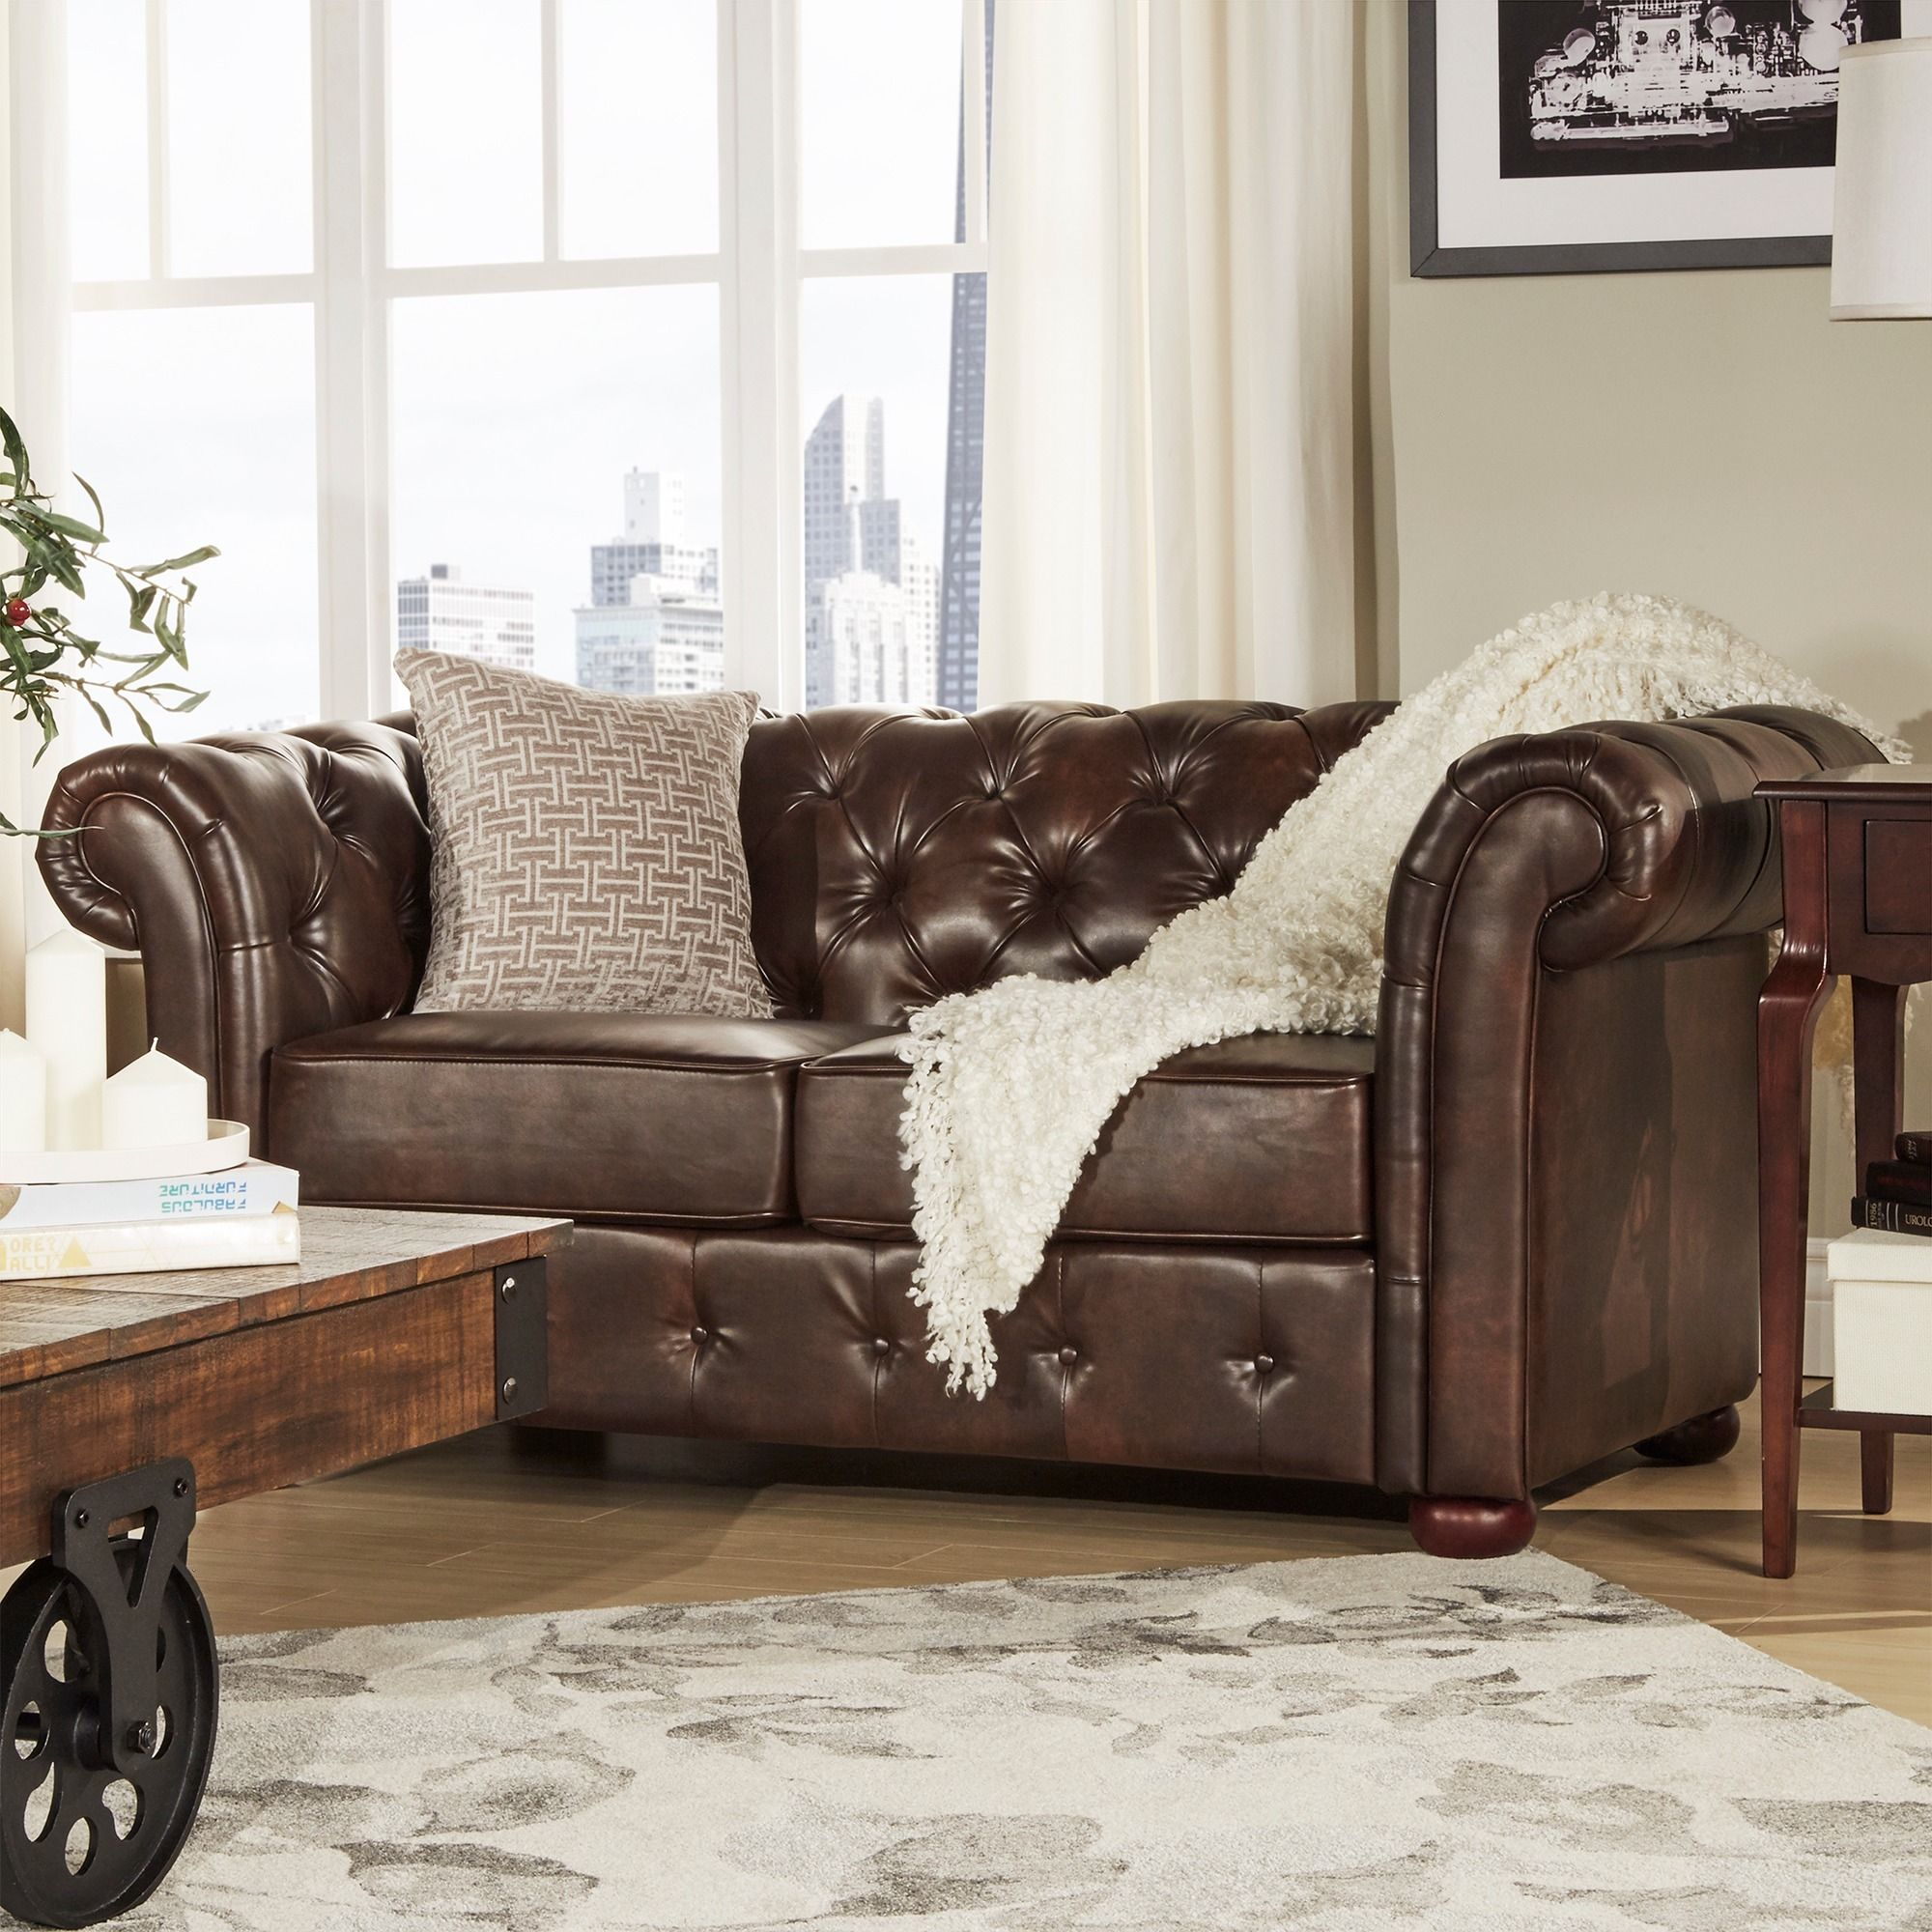 Knightsbridge Brown Bonded Leather Tufted Scroll Arm Chesterfield Loveseat  by iNSPIRE Q Artisan by iNSPIRE Q